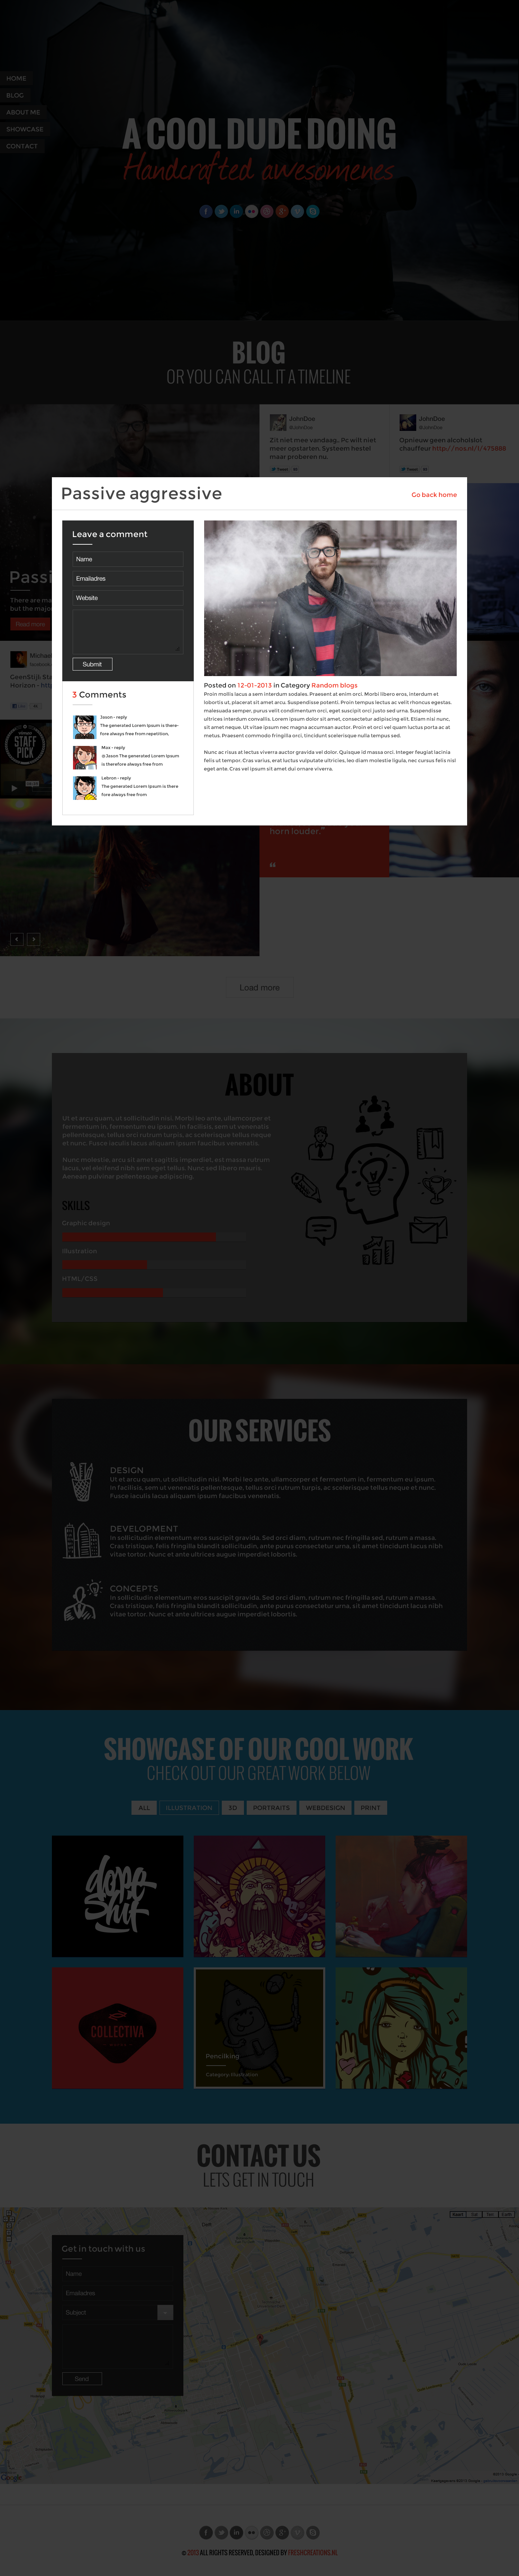 Awesome PSD Template - Onepage Portfolio & Blog